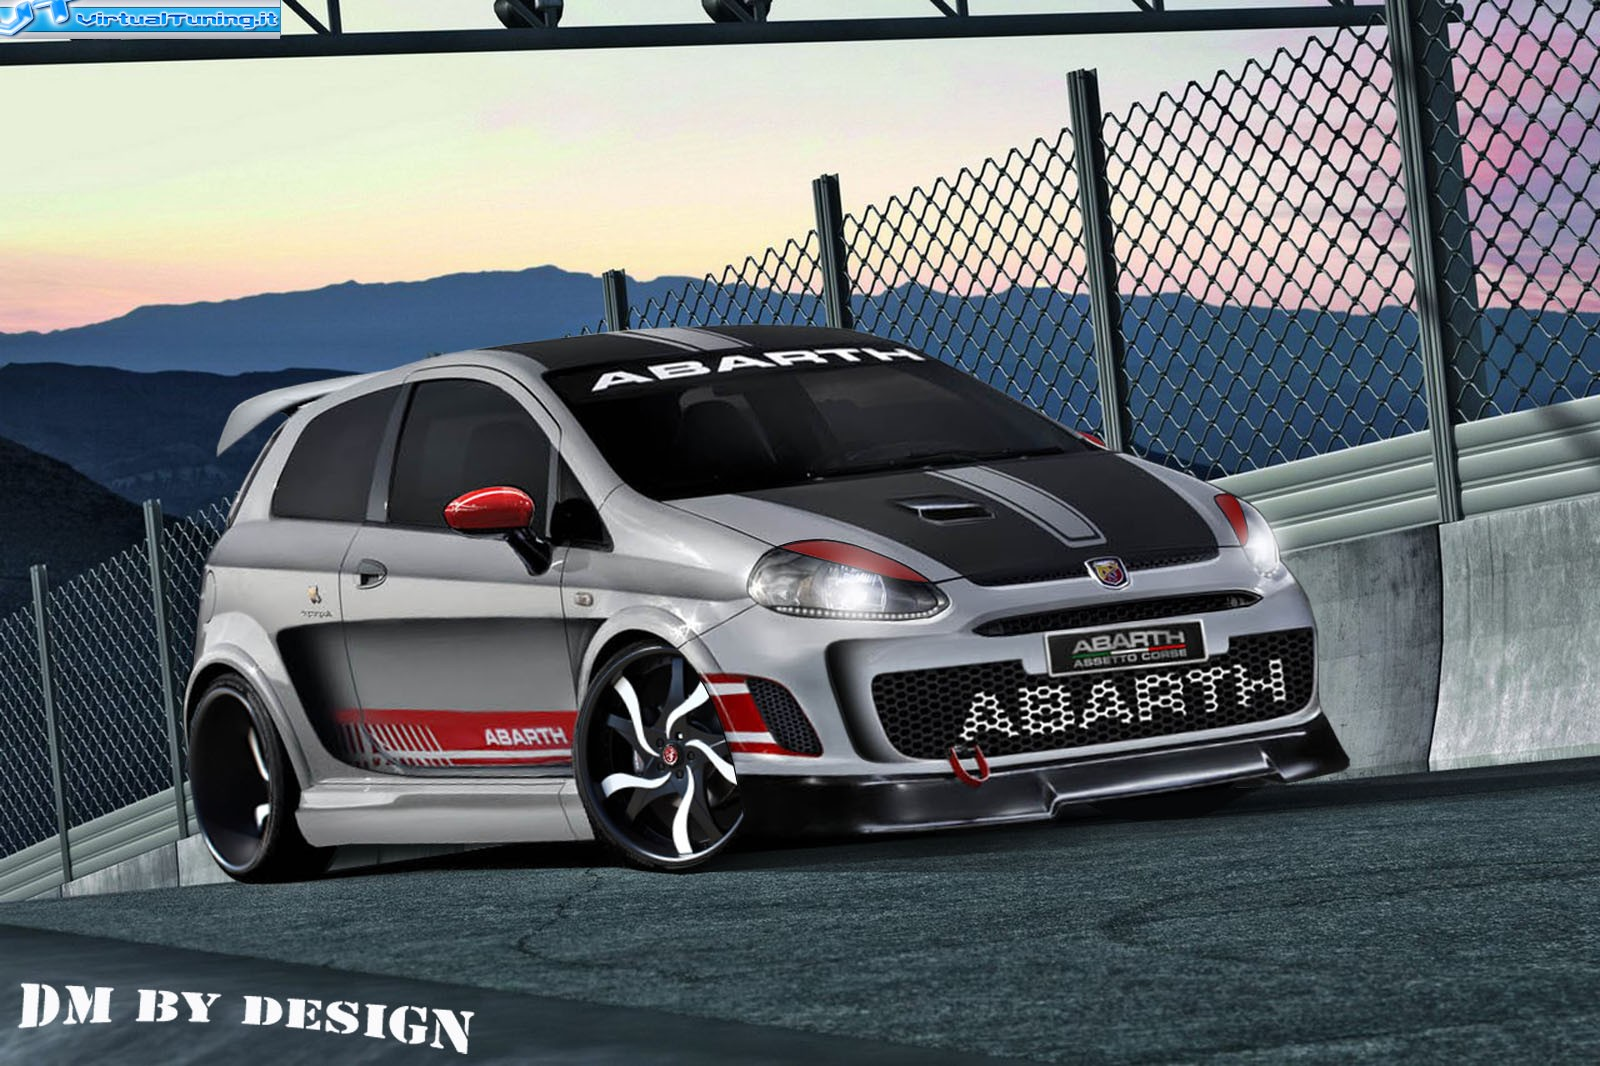 fiat grande punto abarth by dm by design. Black Bedroom Furniture Sets. Home Design Ideas